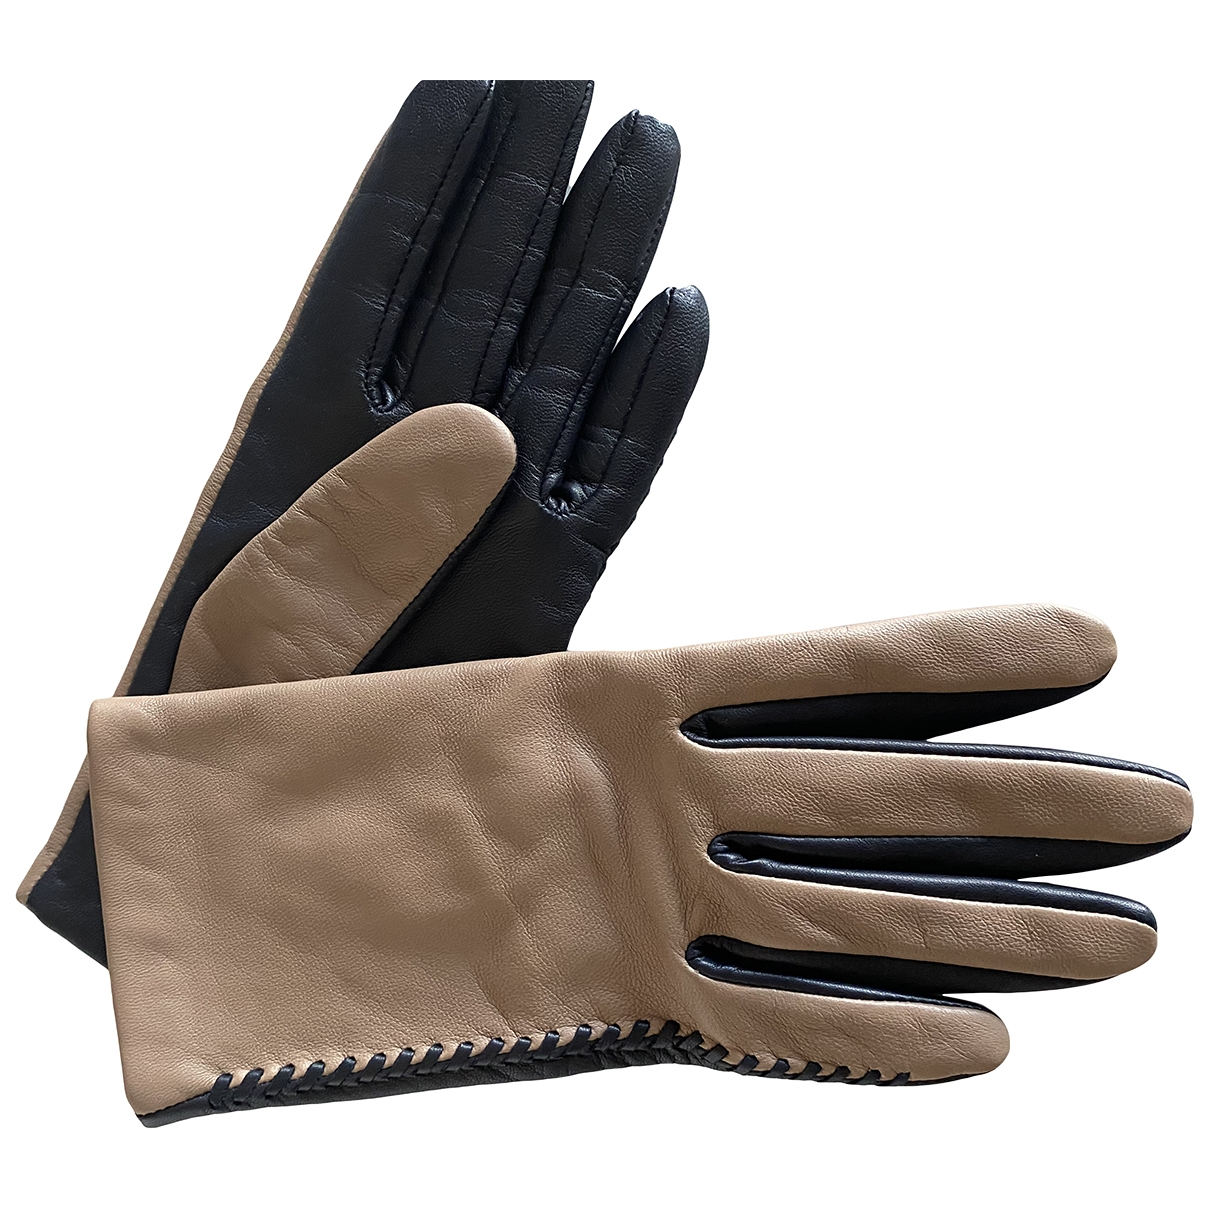 & Stories \N Blue Leather Gloves for Women XS International